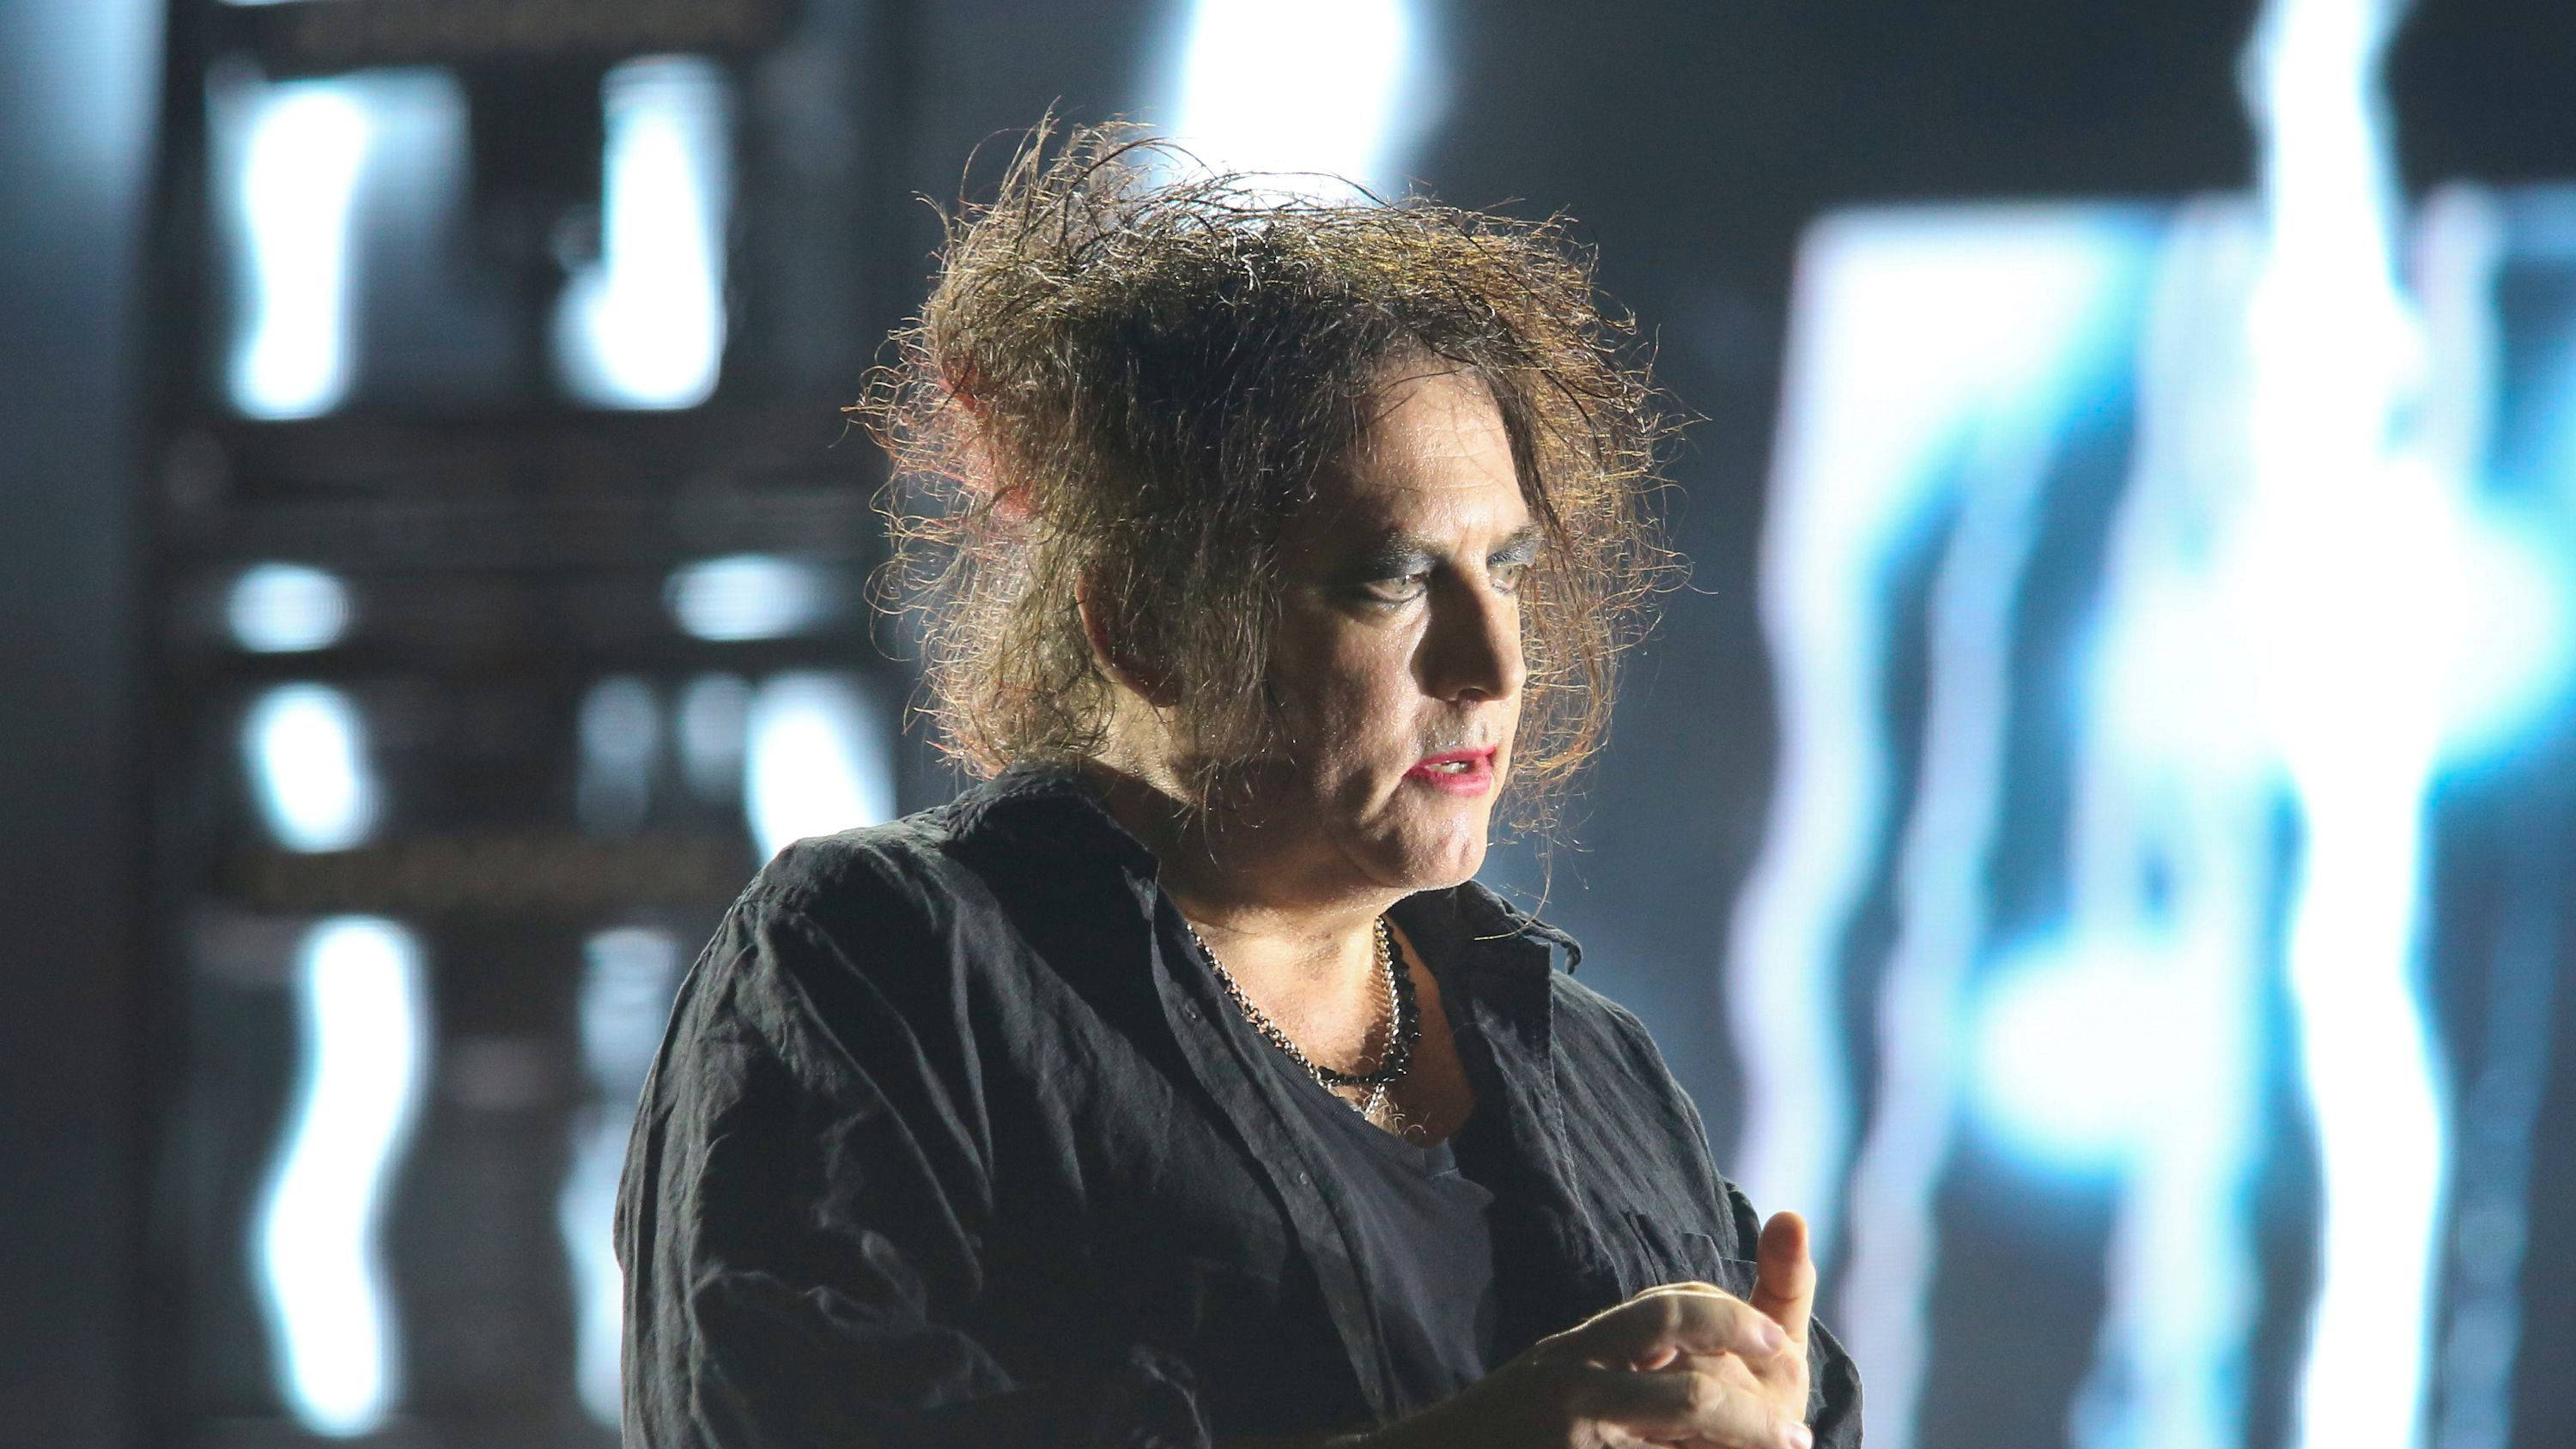 Robert Smith is planning THREE new Cure albums